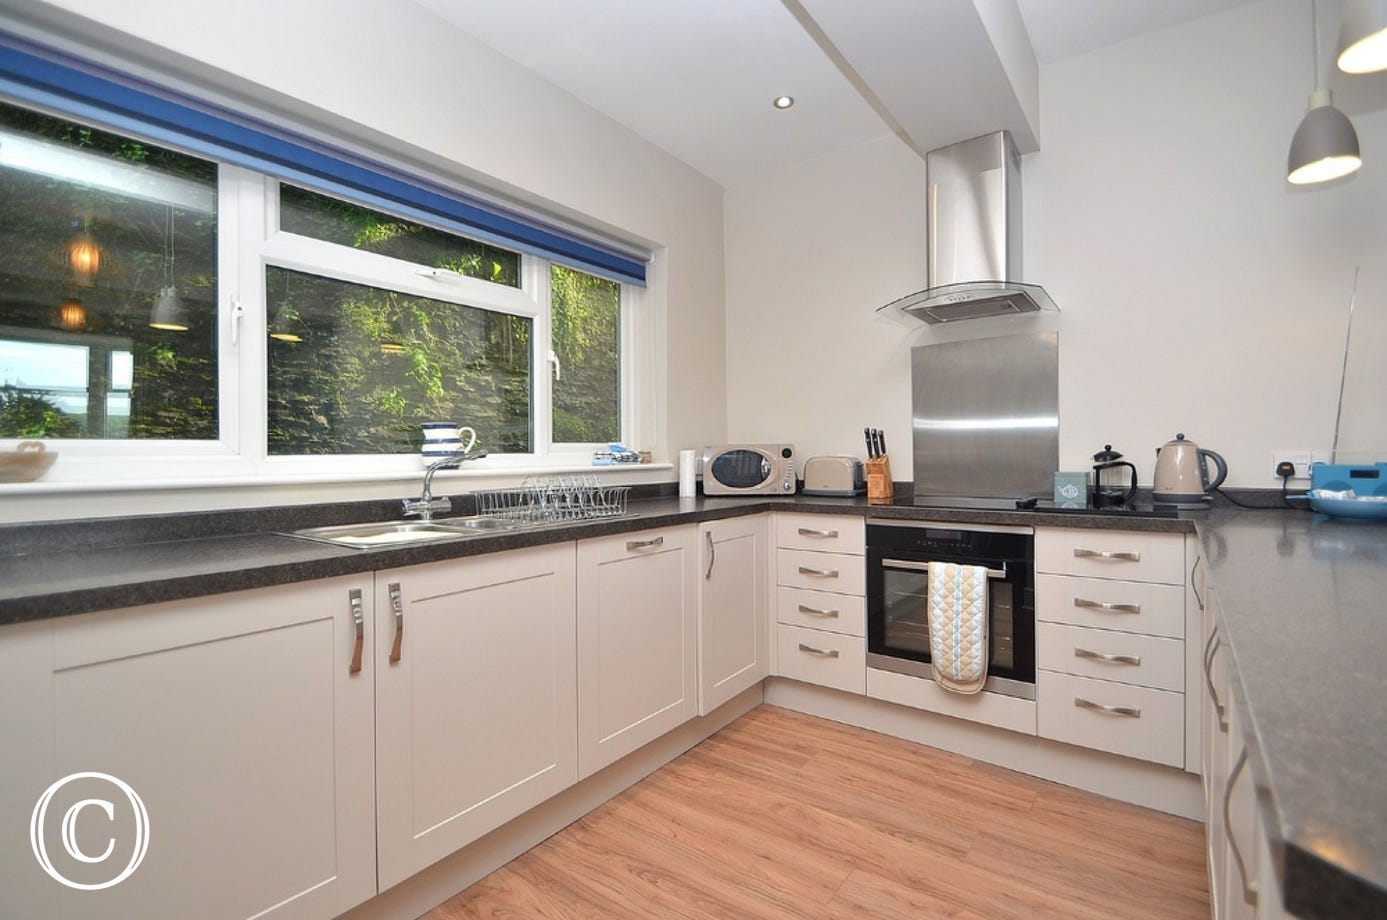 Kitchen: Spacious open plan kitchen with range of high-gloss wall and base units, integrated fridge/freezer, dishwasher, electric oven and hob with extractor hood. Utility with washing machine and dryer.